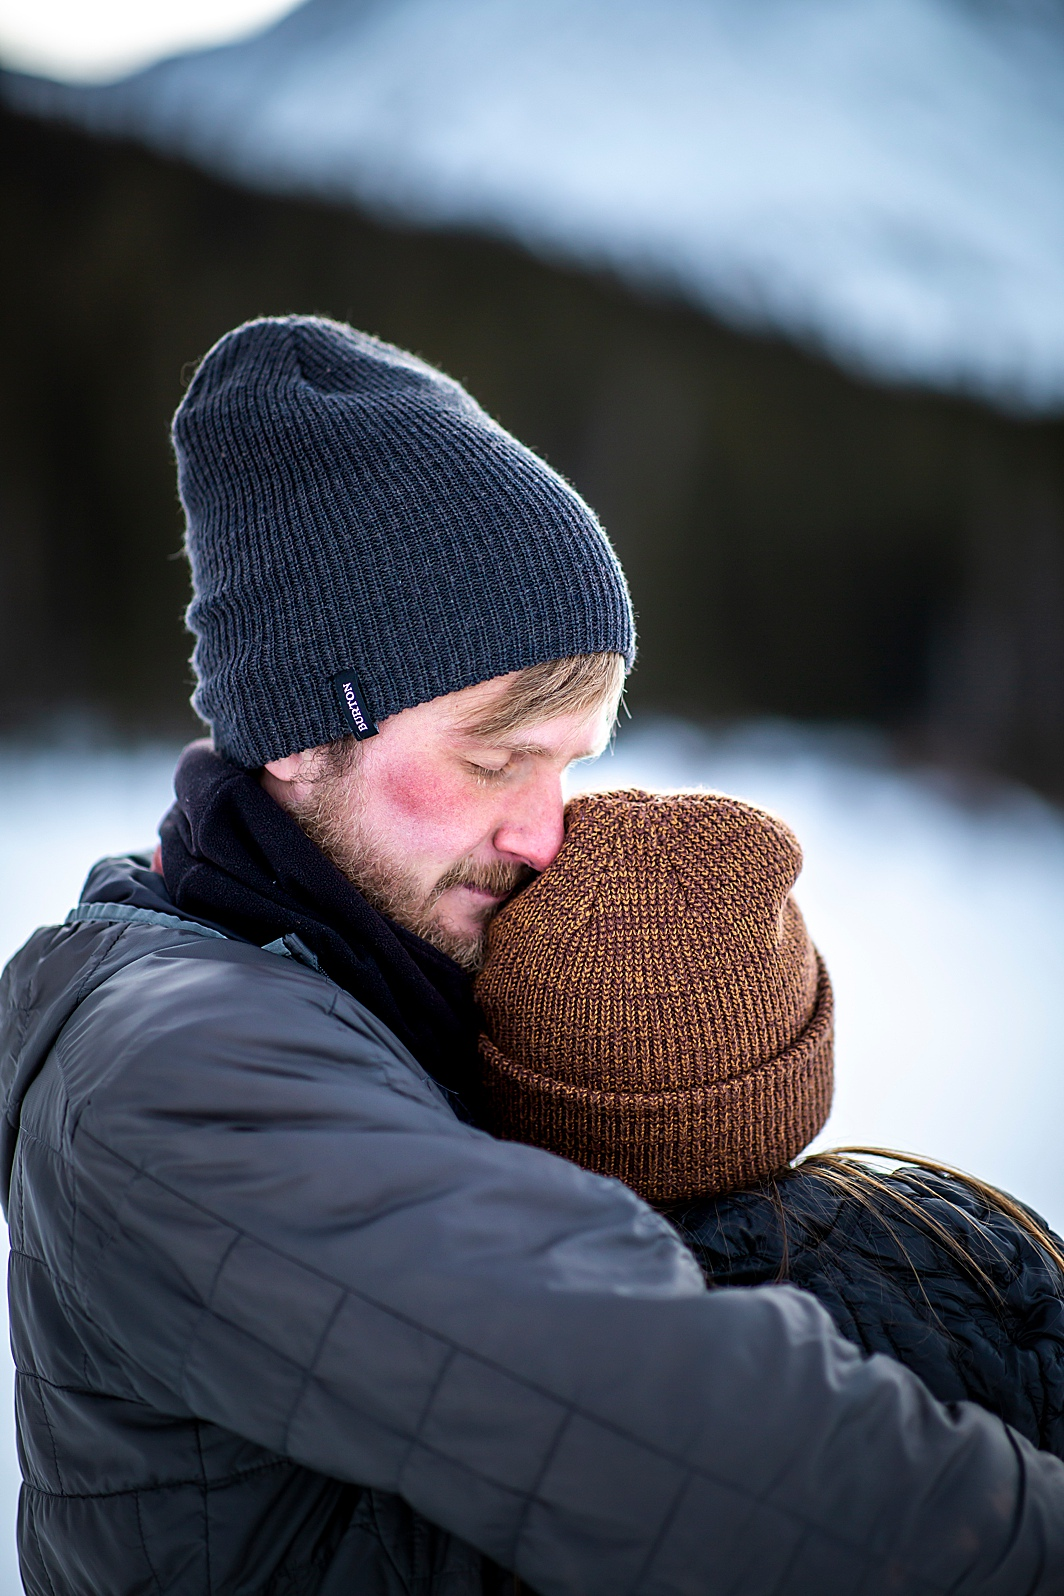 Cute couple photo of man hugging woman in the snow during their winter engagement session in Breckenridge, Colorado taken by Hillary Shedd Photography, Colorado Wedding Photographer.